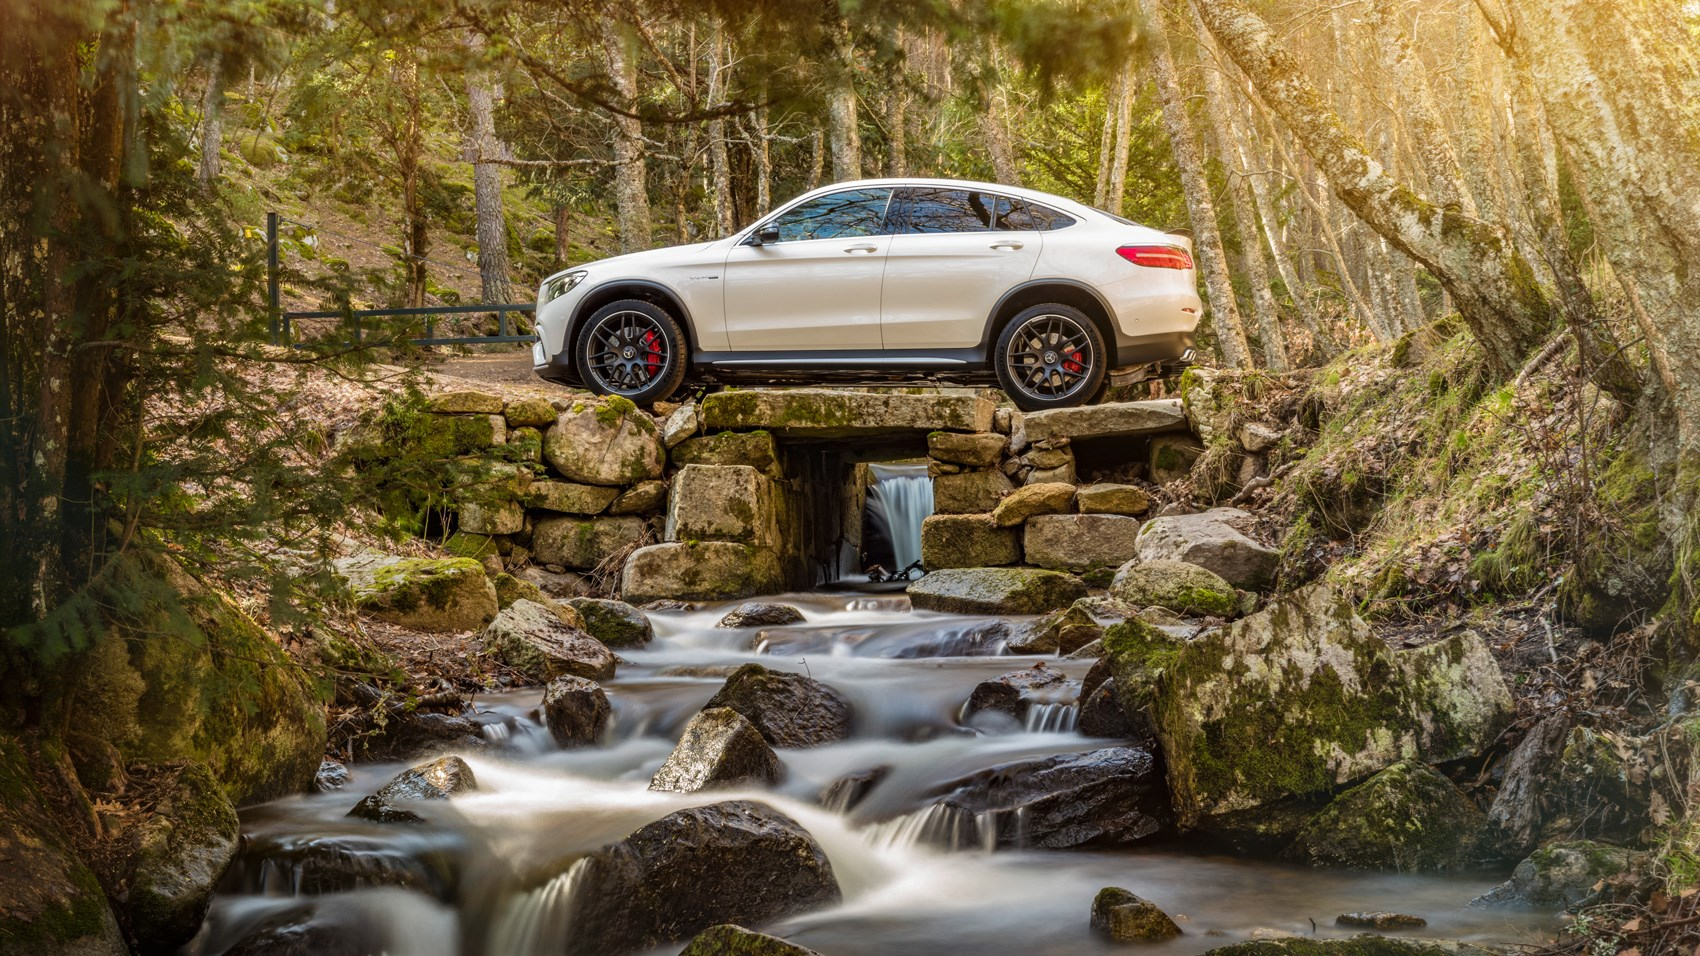 Mercedes-AMG GLC63 S 4Matic Coupe side